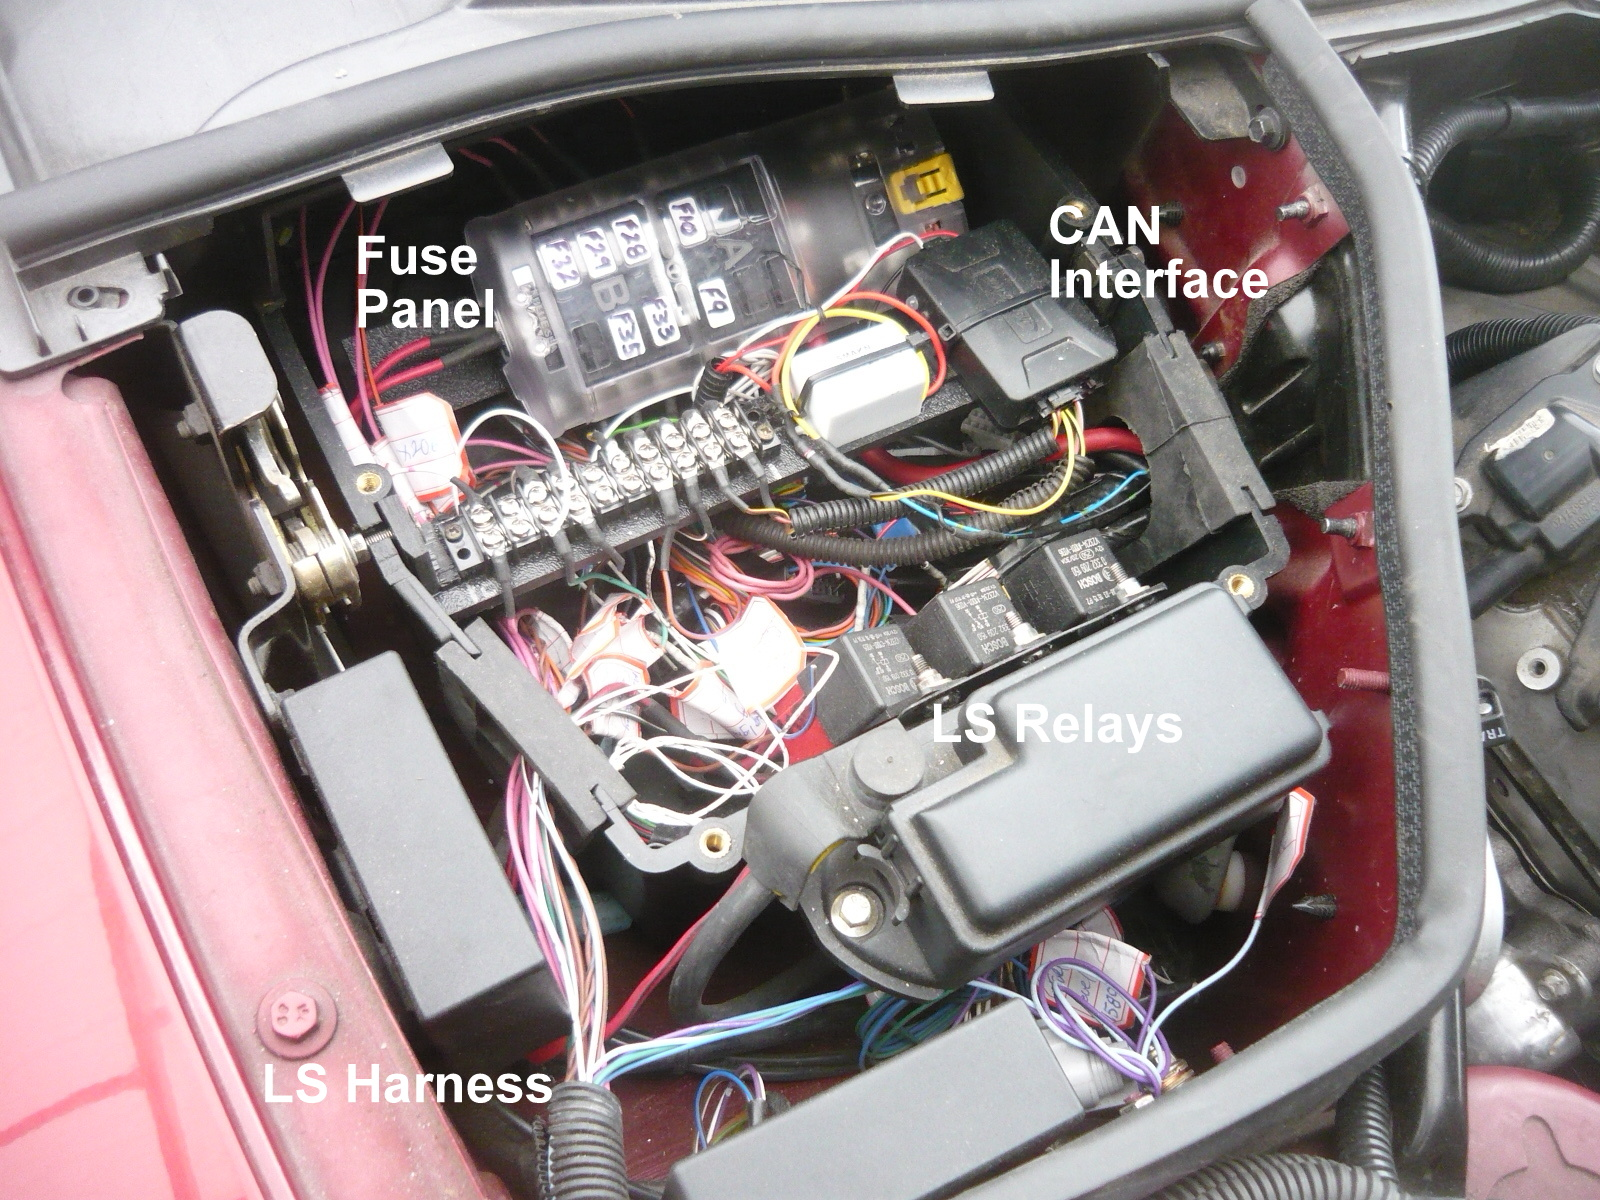 Jaguar Specialties on car wiring guide, car wiring kit, battery harness, car wiring connectors, car electrical, car safety harness, car radio harness, car radiator, construction harness, kensun relay harness, car ecu, car stereo wiring colors, car fuse box, car starter harness, car crankshaft, 4 pin relay harness, alpine stereo harness, ford 5.0 fuel injection harness,